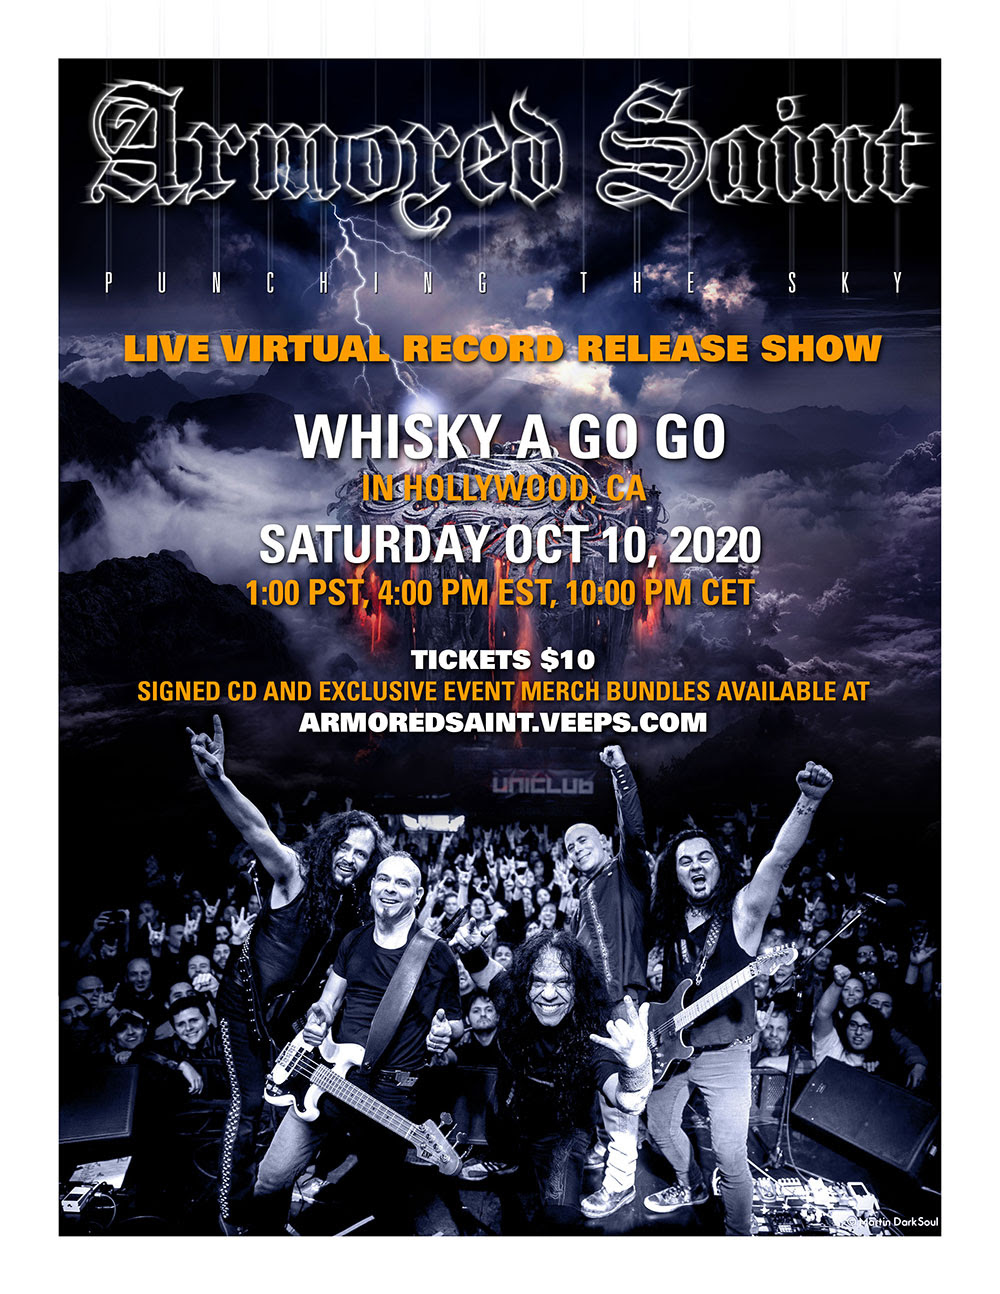 """Armored Saint hosts live, virtual album release show for Video for """"Punching The Sky"""" CD Release Virtual Live Online Show"""